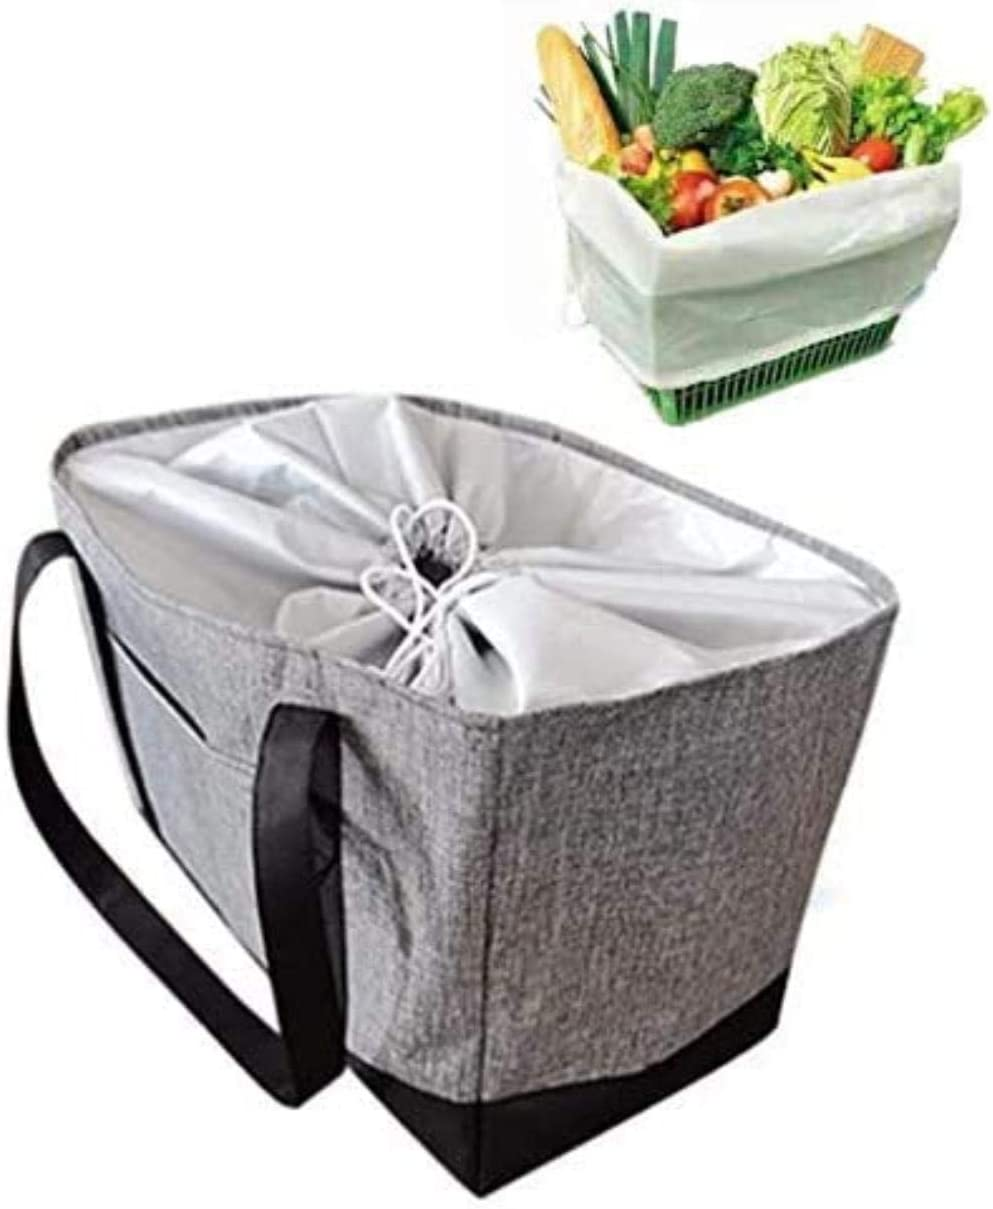 Large Reusable Insulated Grocery Shopping Cart Insert Bag with Drawstring, Heavy Duty Alumimum Foam Tote Thermal Bag for Frozen Cold Hot Foods Transport, Grey